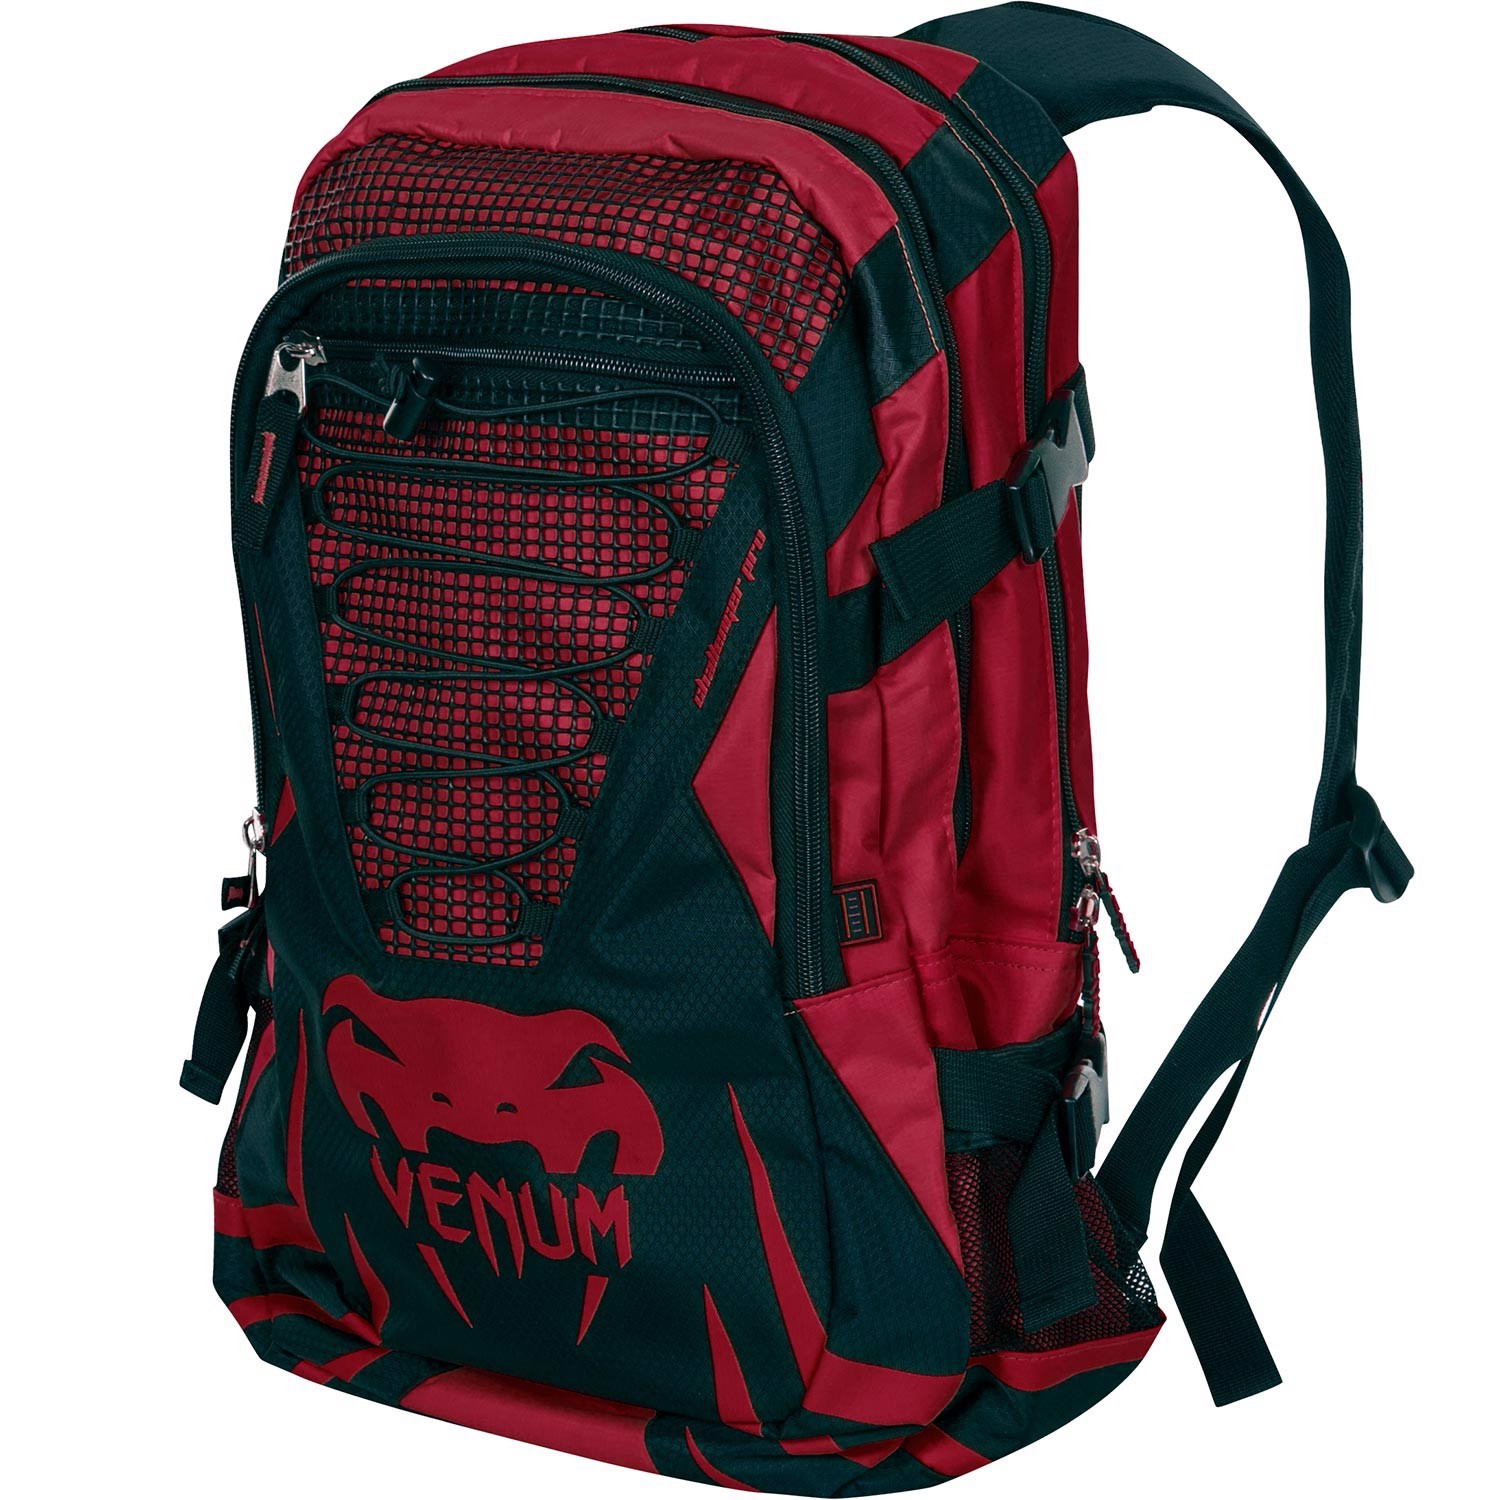 BALO VENUM CHALLENGER PRO BACKPACK - RED/BLACK